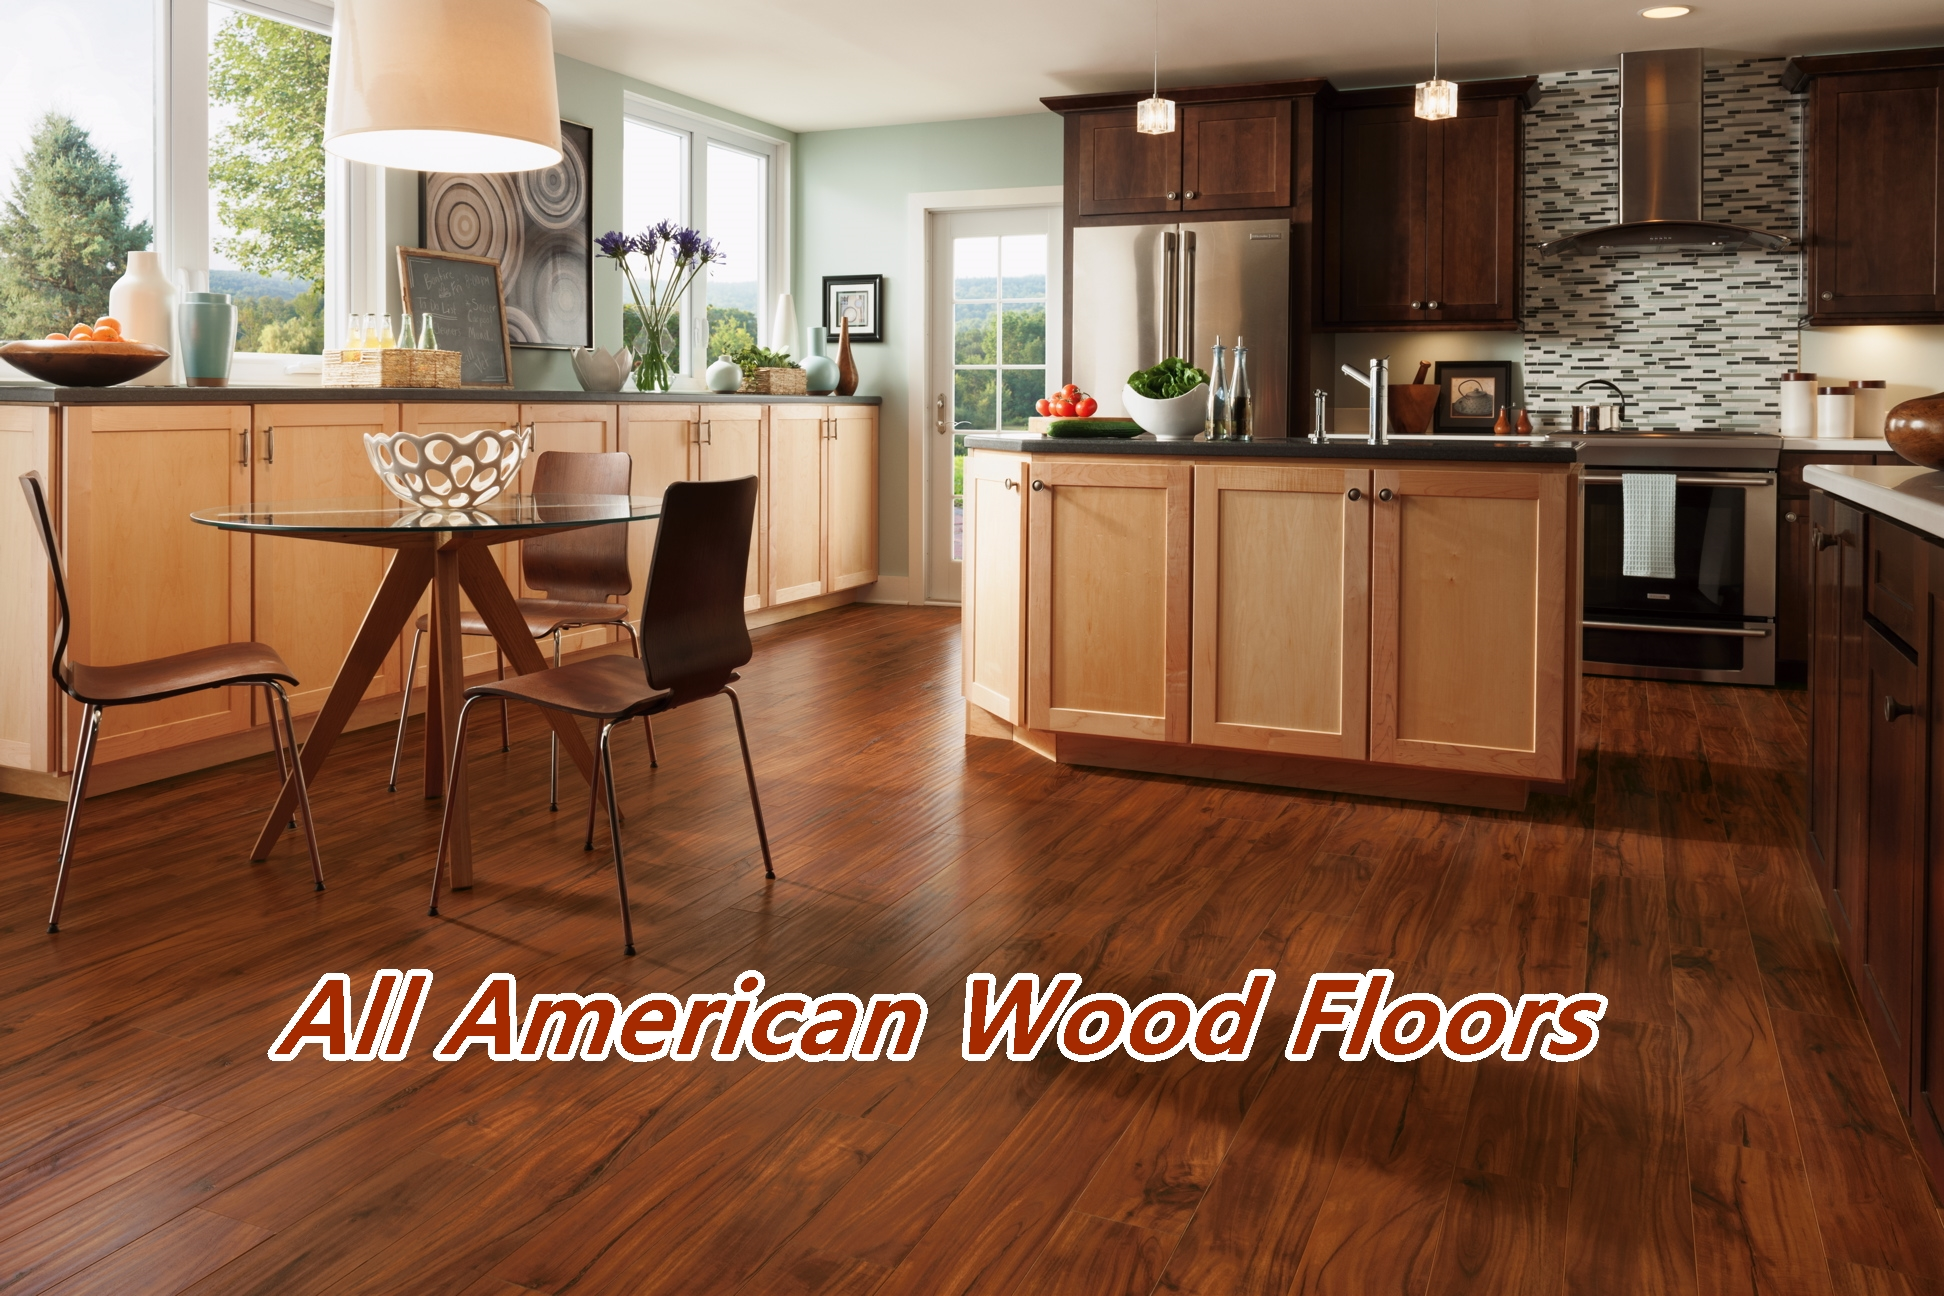 allamerican woodfloors hardwood floor in kitchen